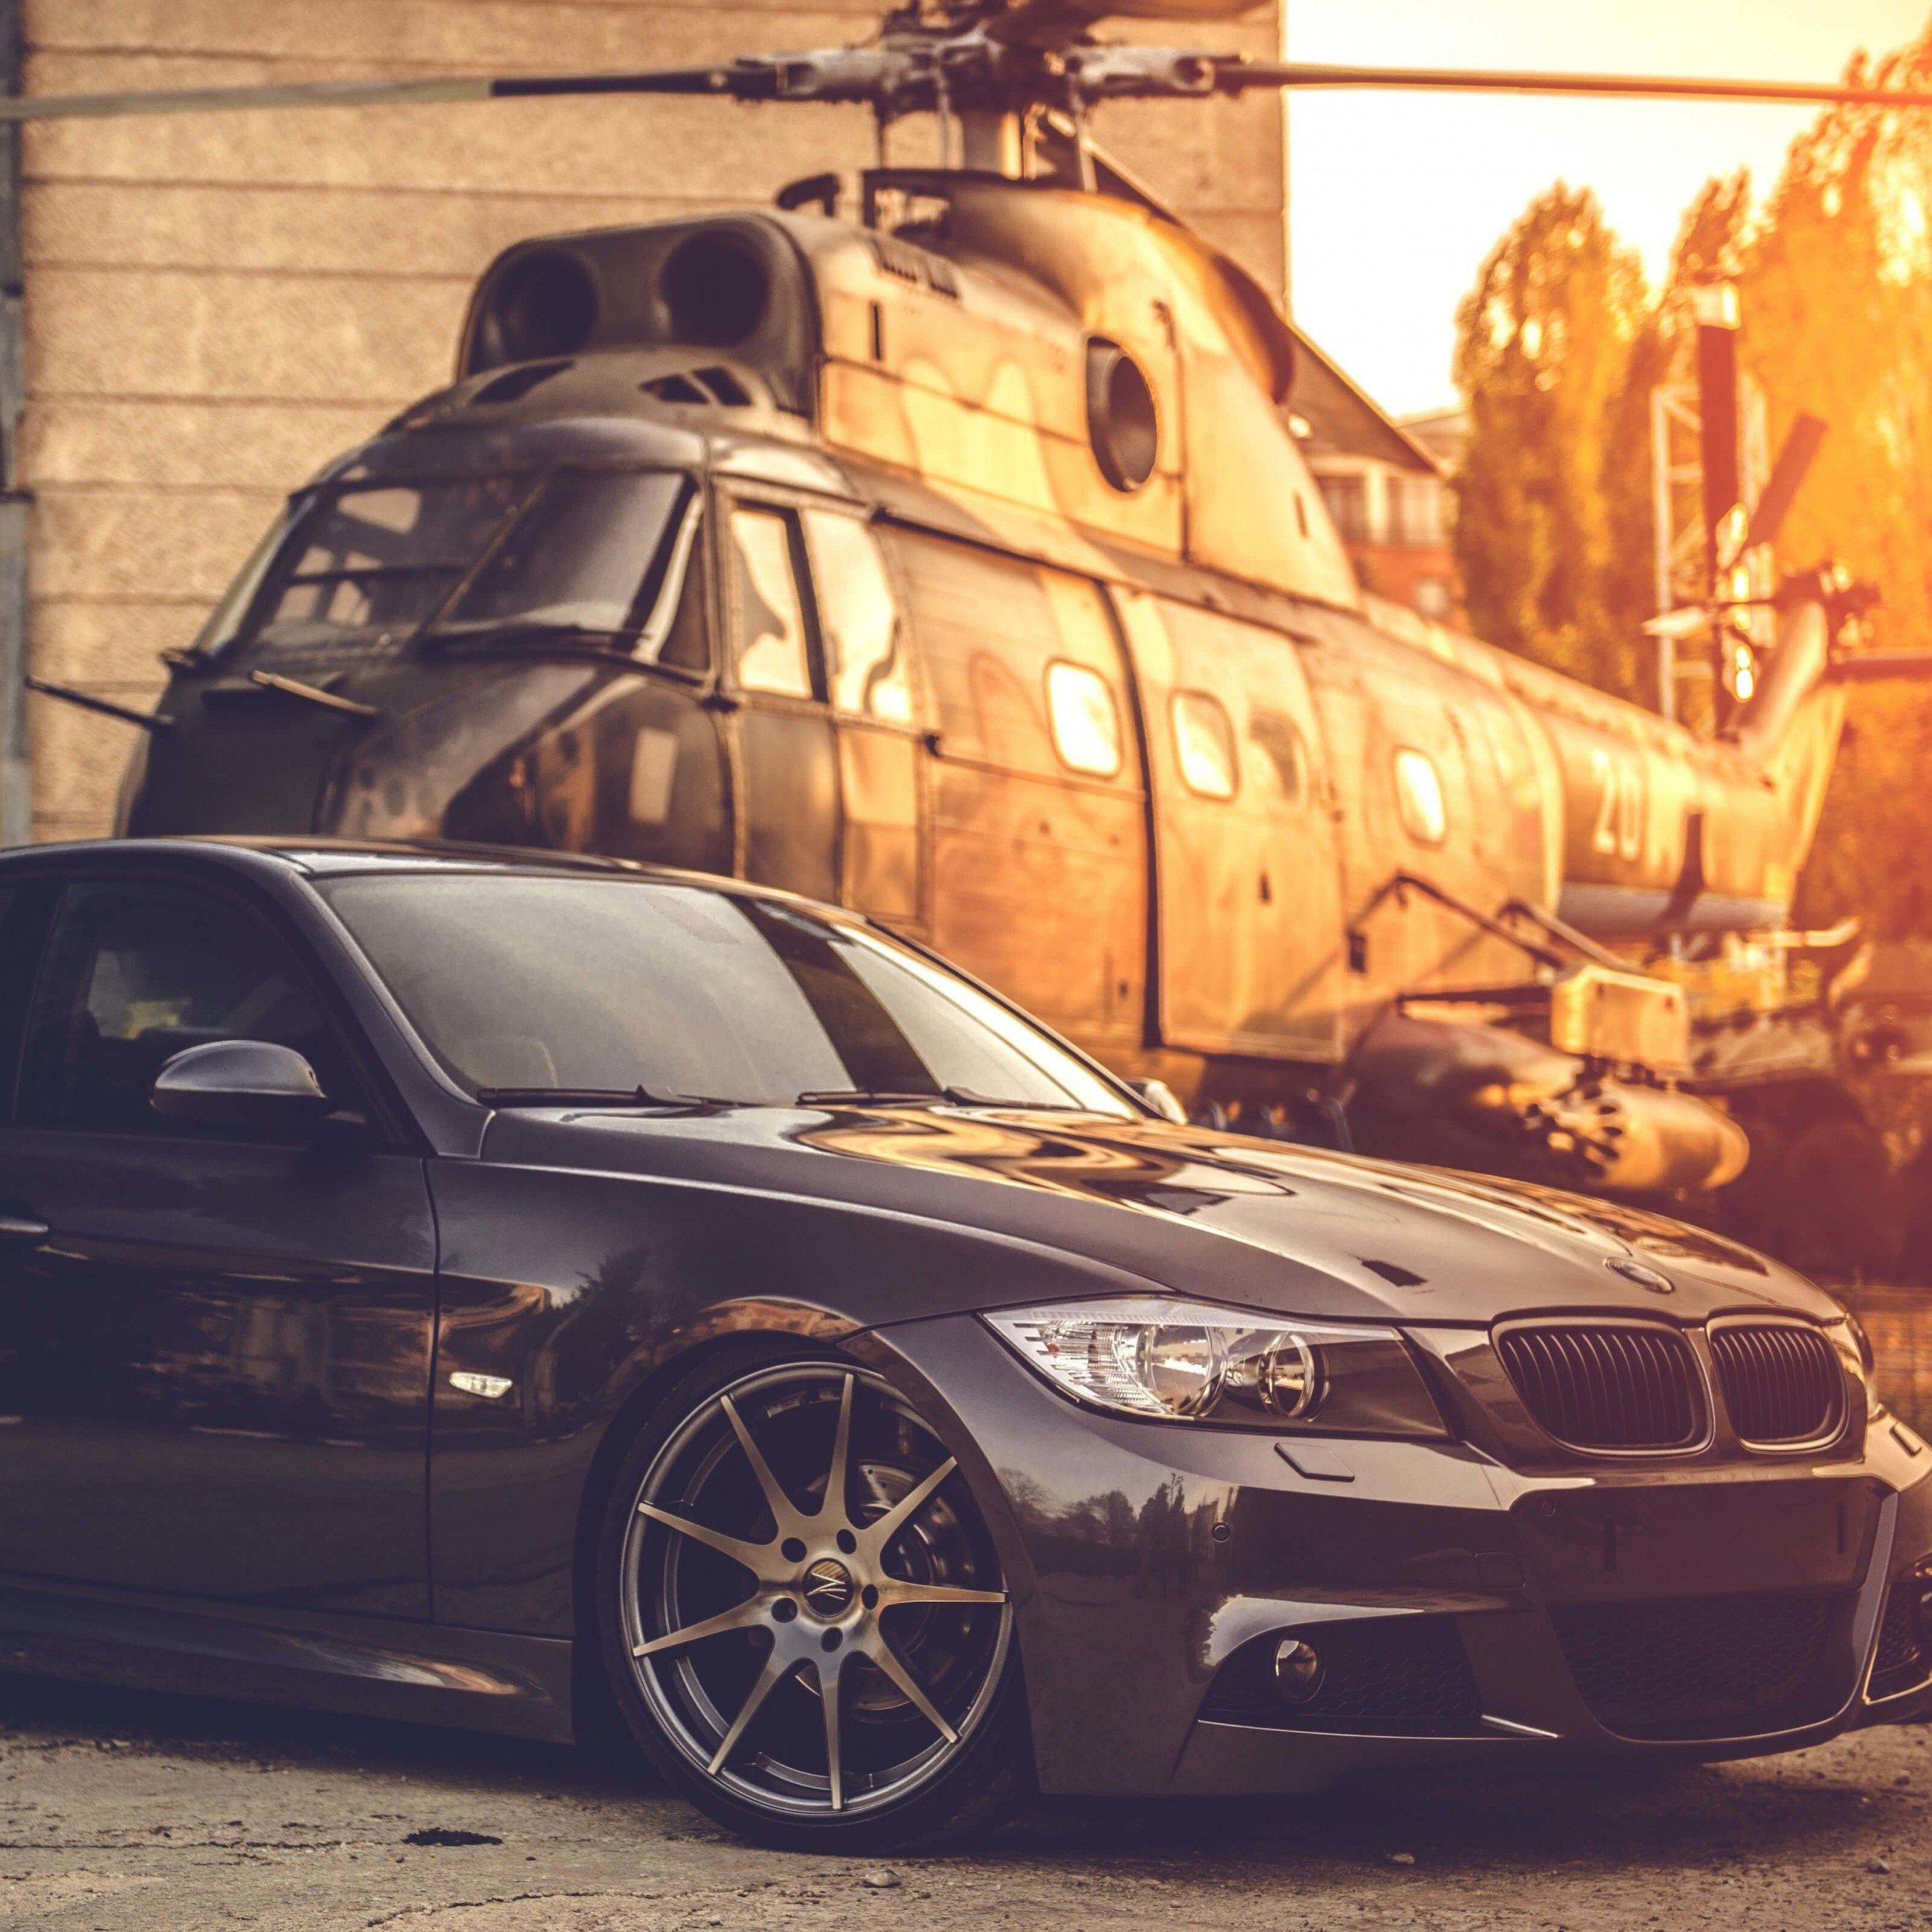 BMW E90 on Z-Performance Wheels Wallpaper for Apple iPhone 6 Plus